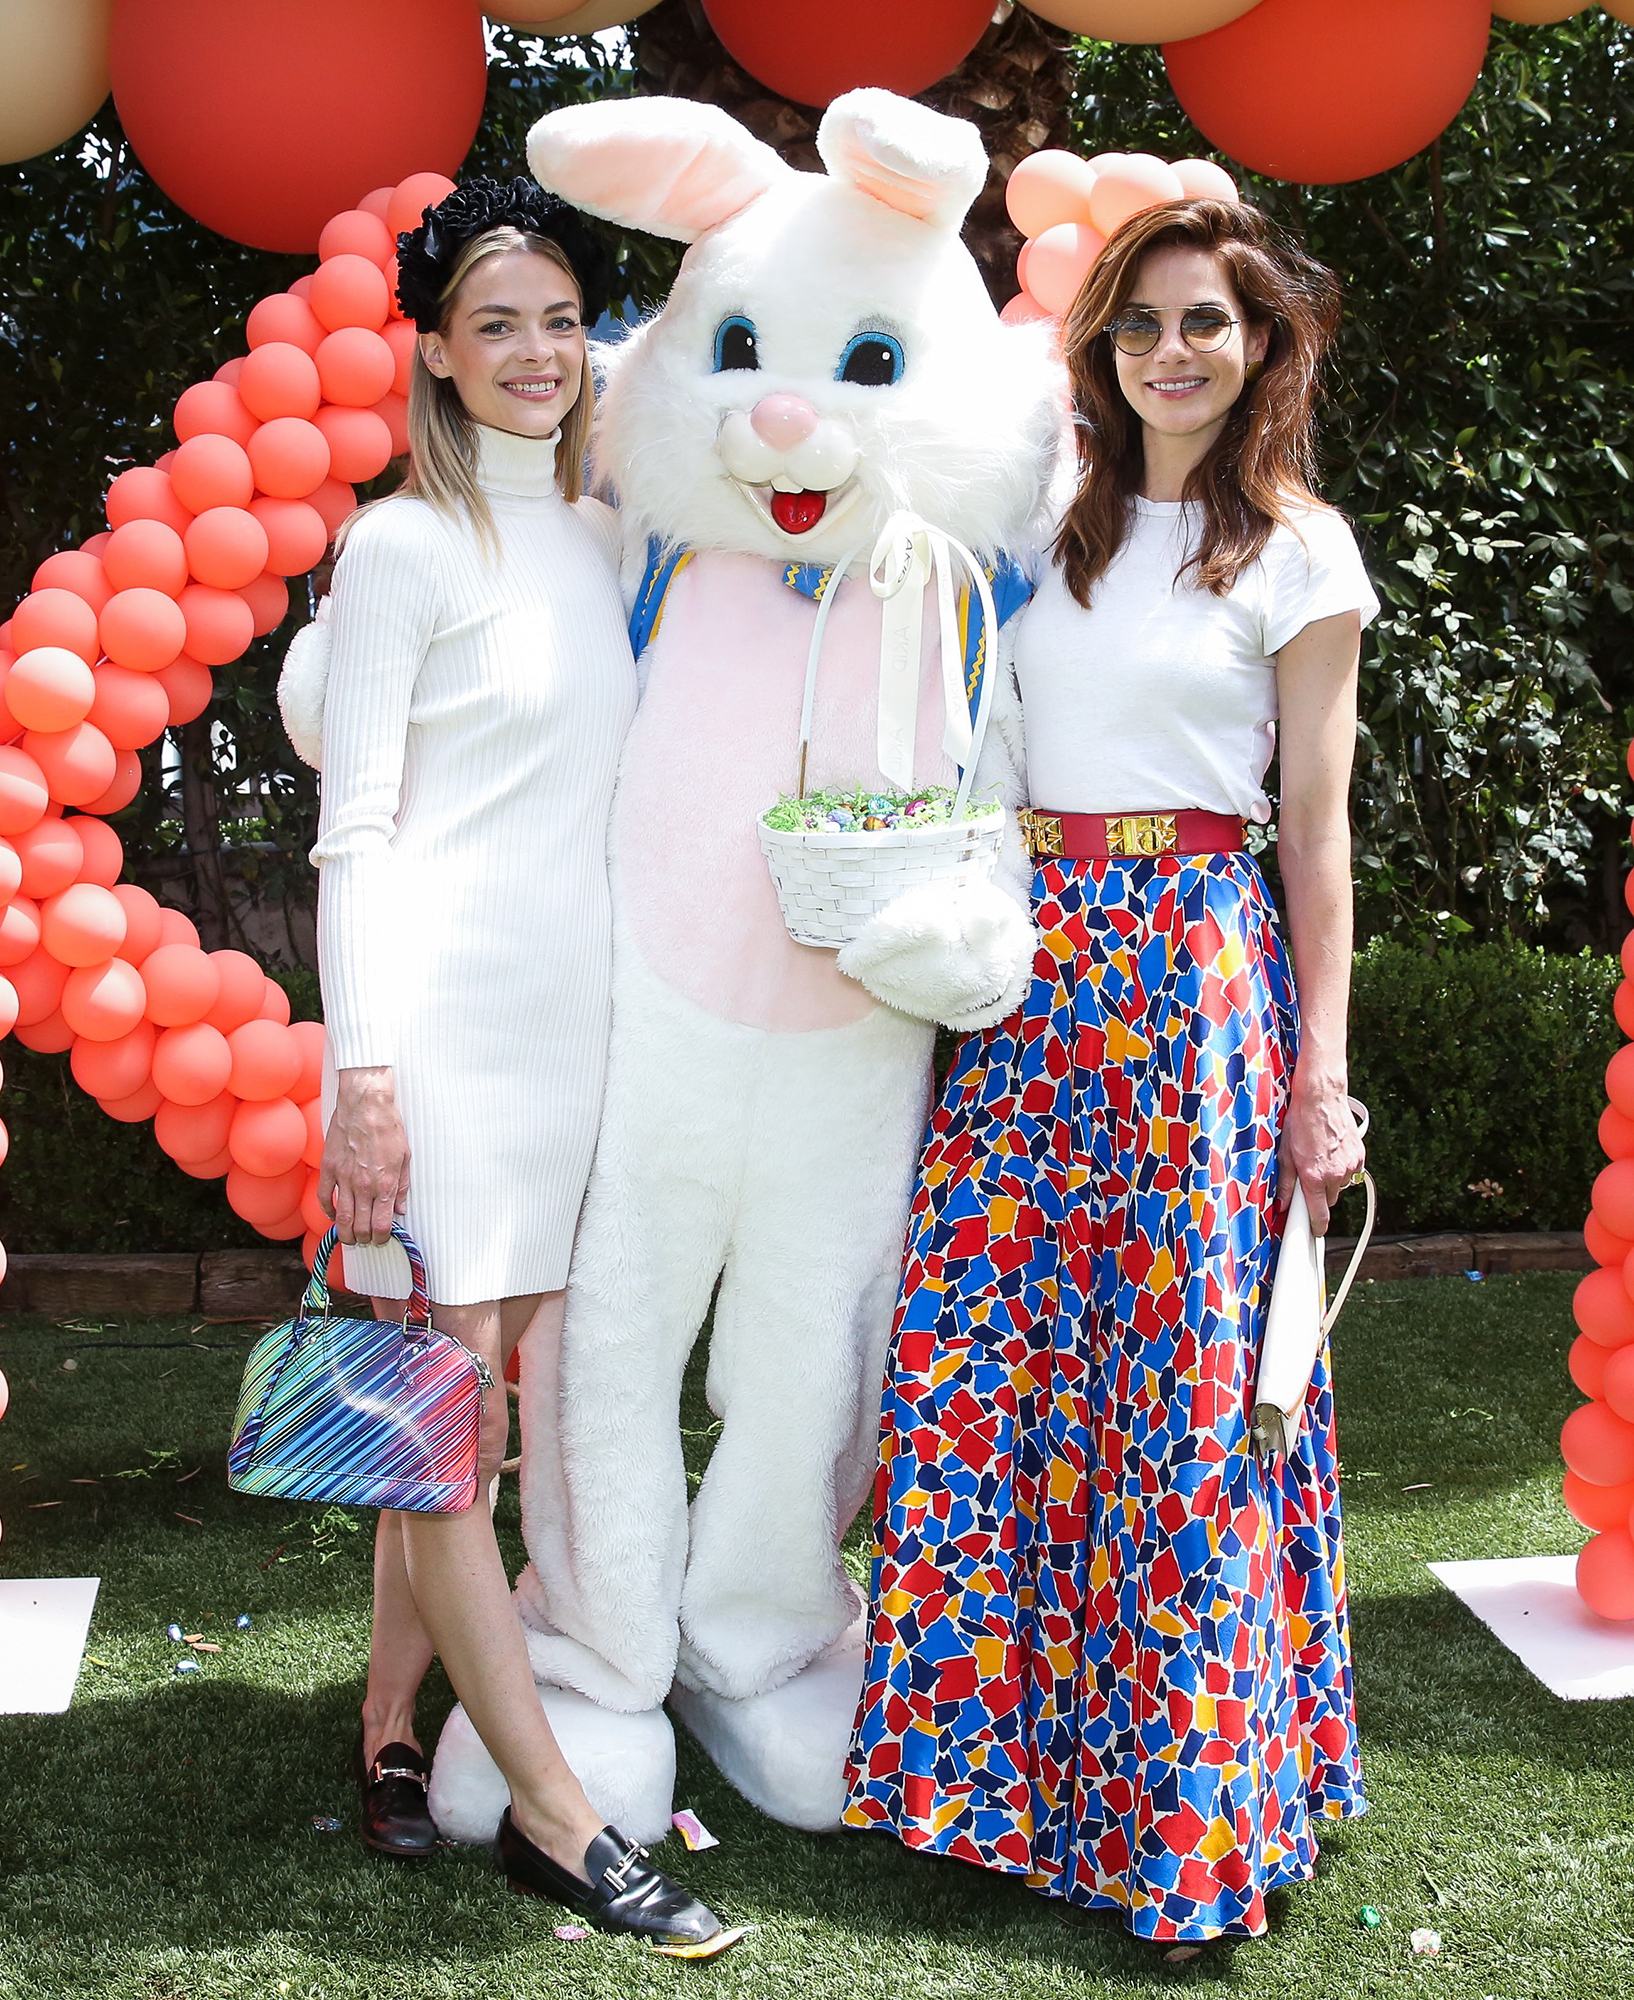 Akid Brand presents The Egg Hunt 2017, Lombardi House, Los Angeles, USA - 09 Apr 2017